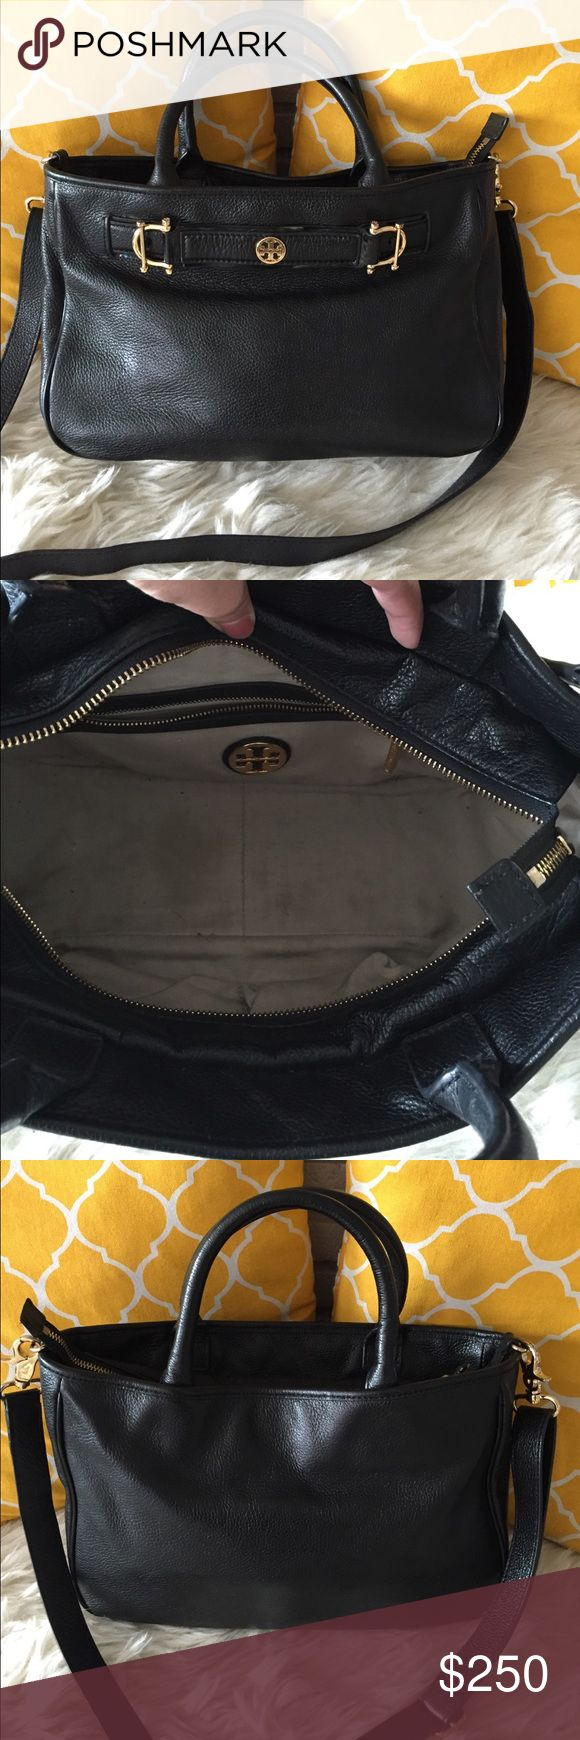 🌸OFFERS?🌸Tory Burch Pebbled Leather Satchel 🌷Authentic🌷 Tory Burch Bags Satchels